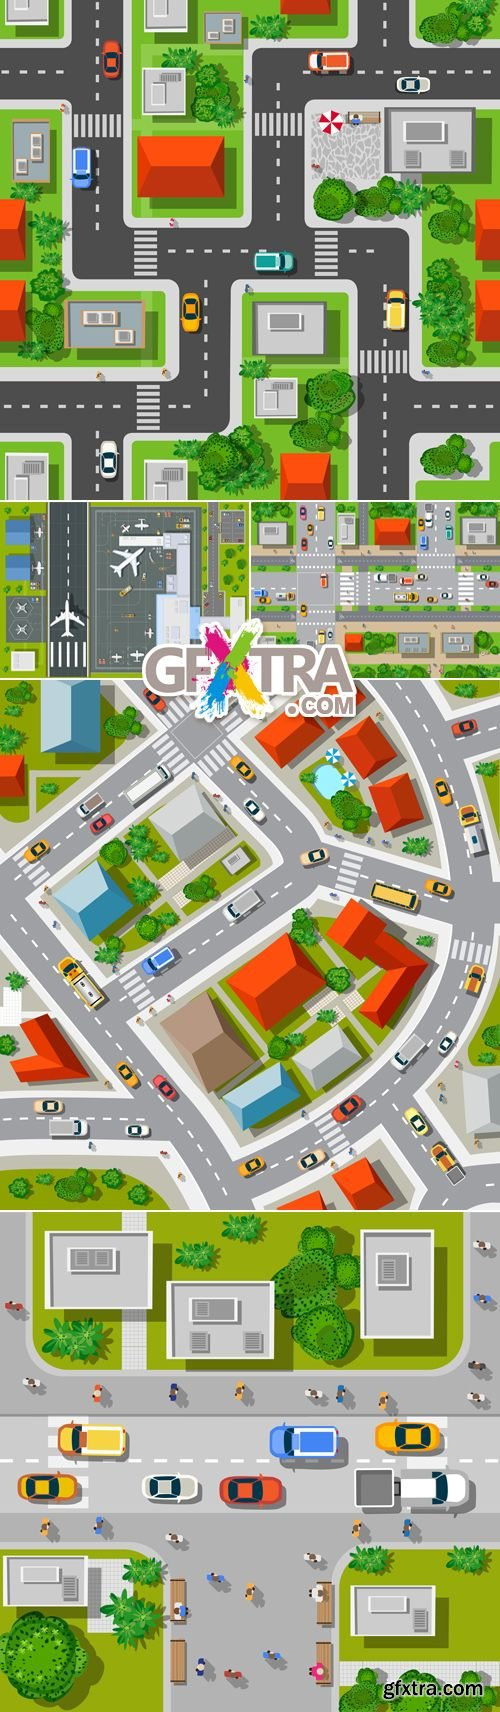 Top View of the City - Isometric Concept Vector